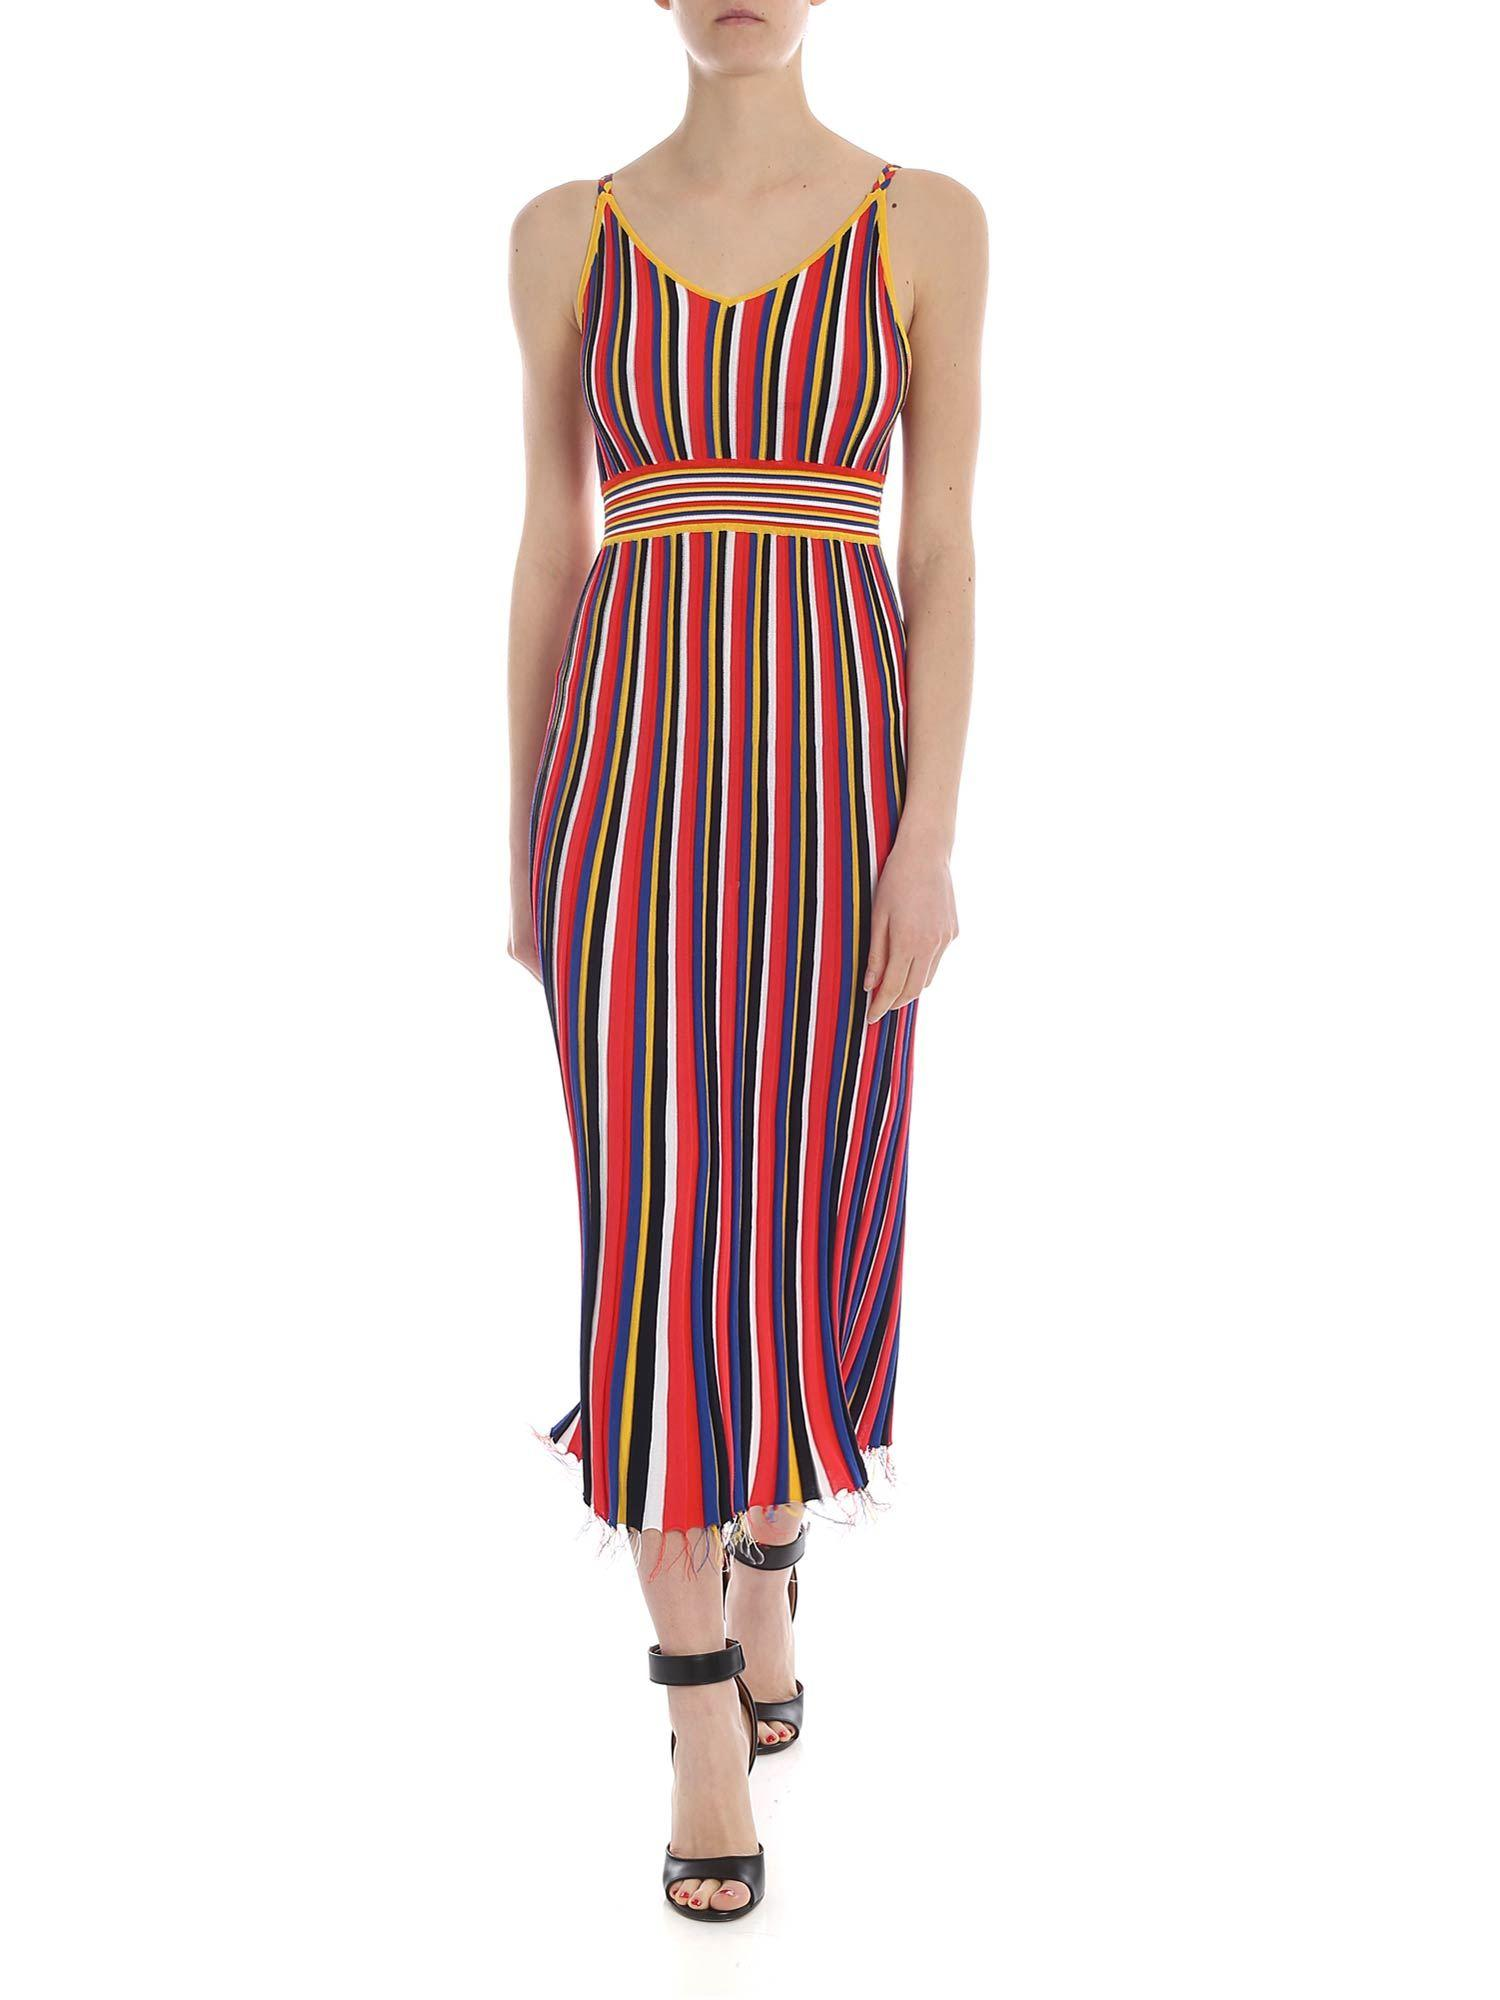 2914bdeef12 Lyst - Pinko Belcolore Dress With Multicolor Stripes in Red